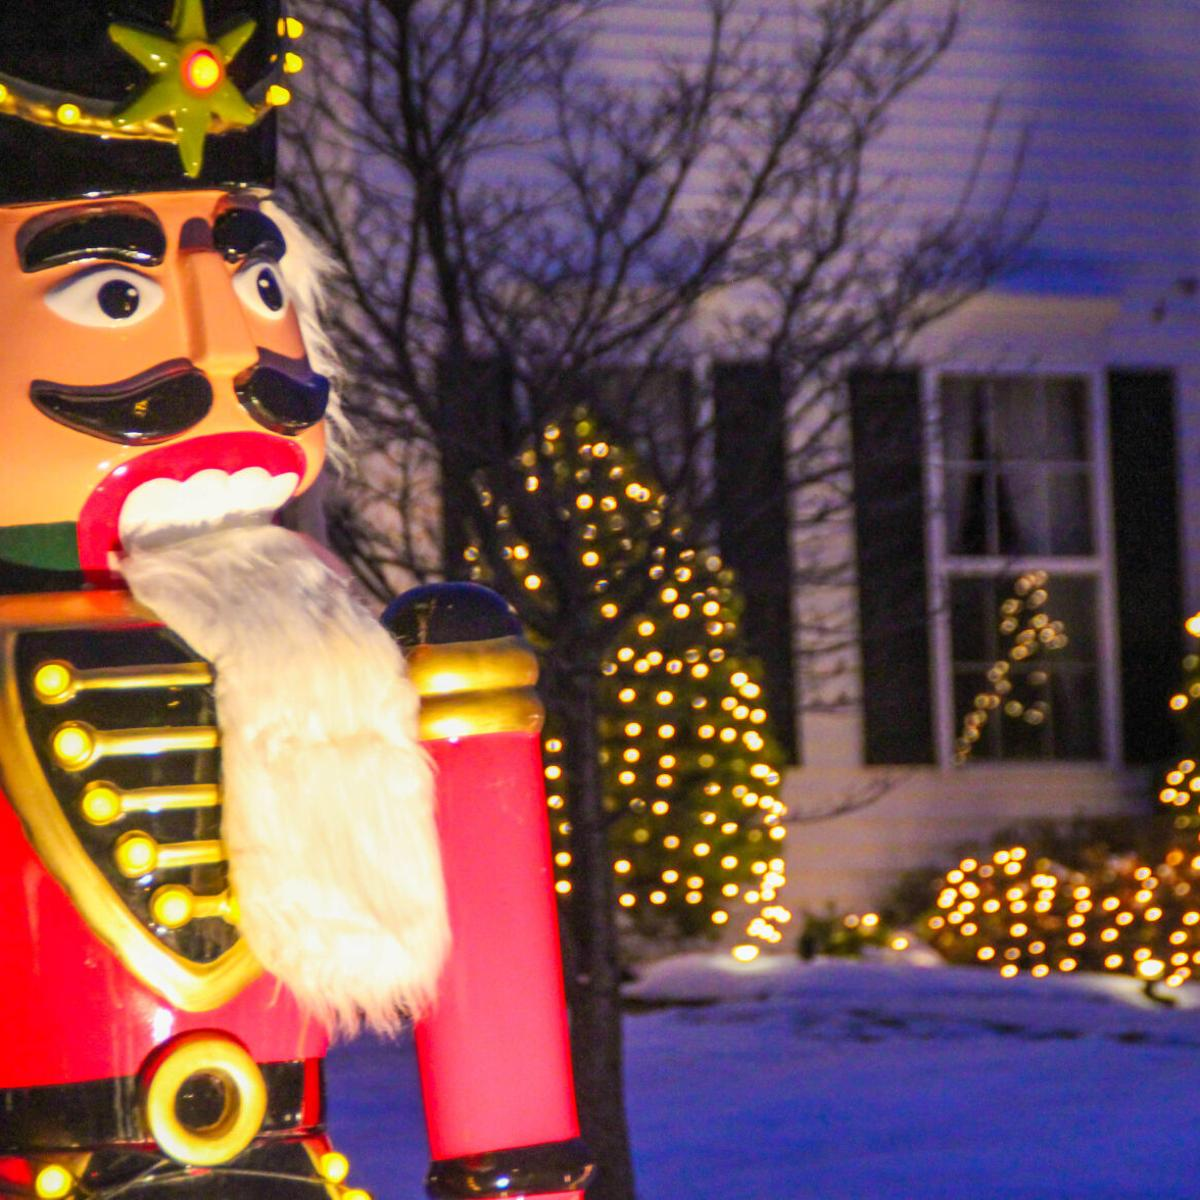 Where to find Christmas light displays in Auburn Opelika this